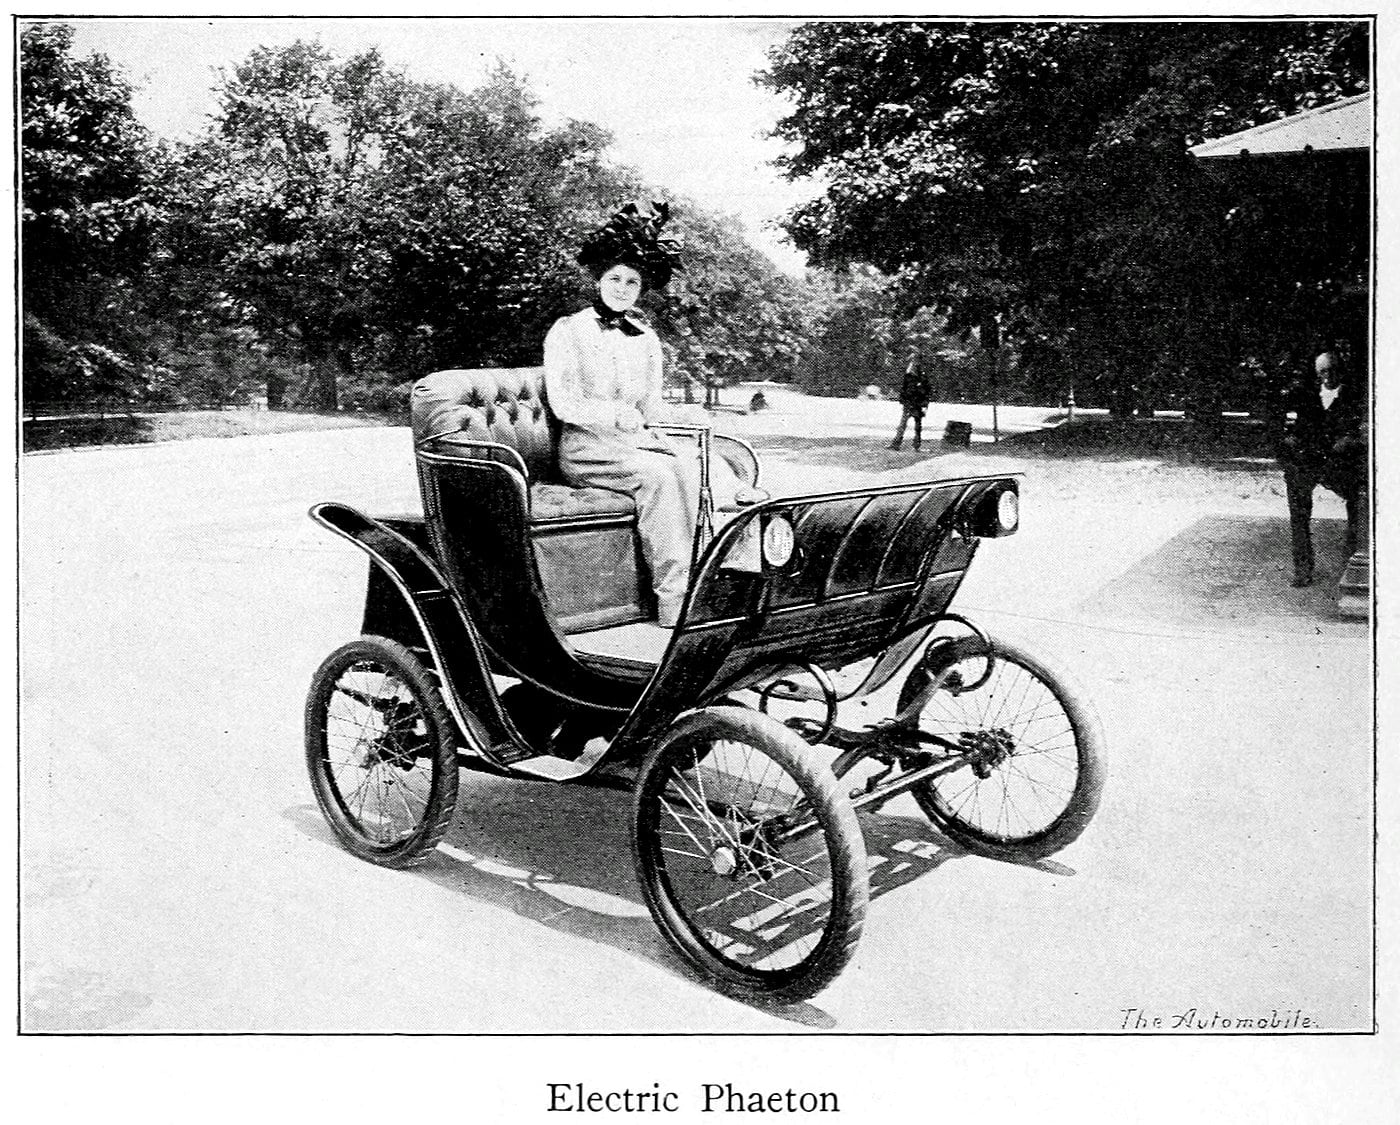 Electric Phaeton vintage automobile from 1899